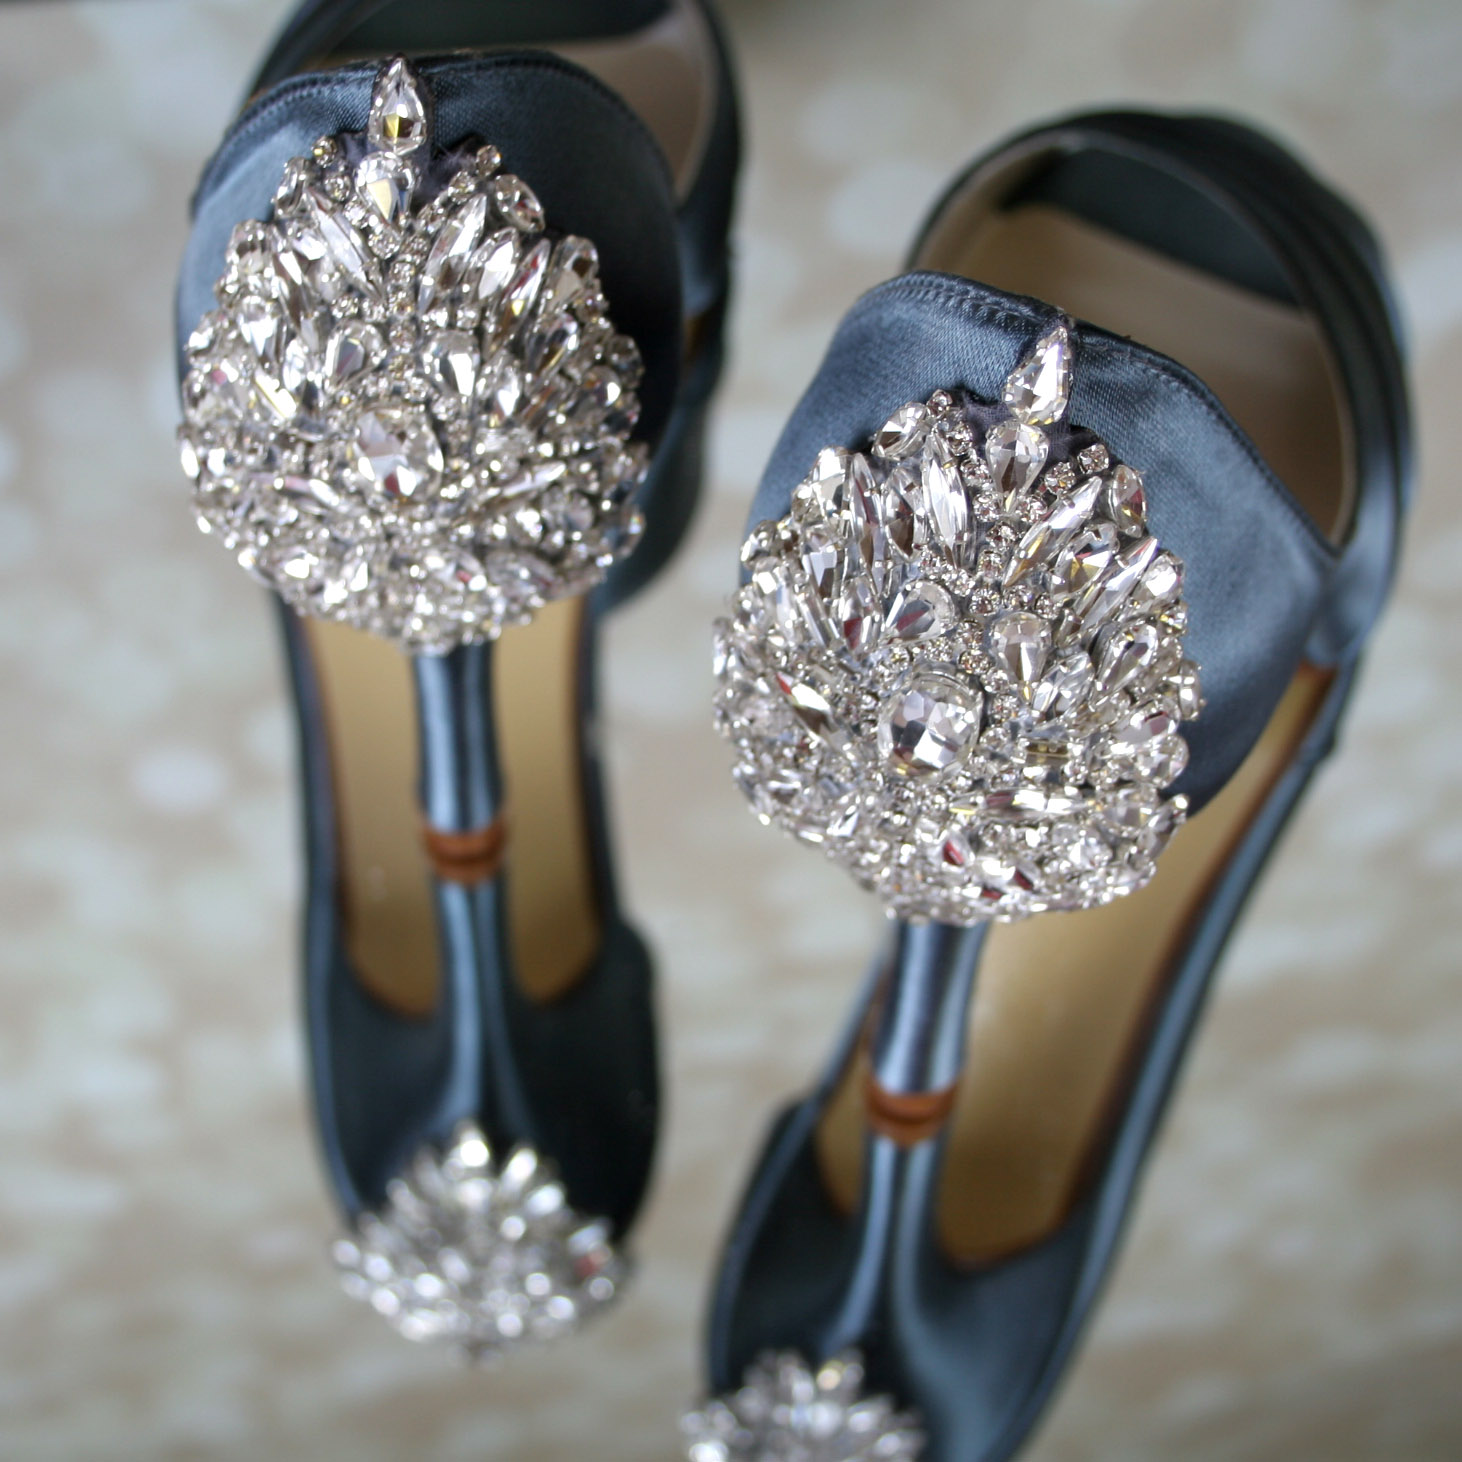 Slate Blue Something Blue Wedding Shoes with Sparkly Crystal Heel Comfortable Custom Wedding Shoes by Ellie Wren